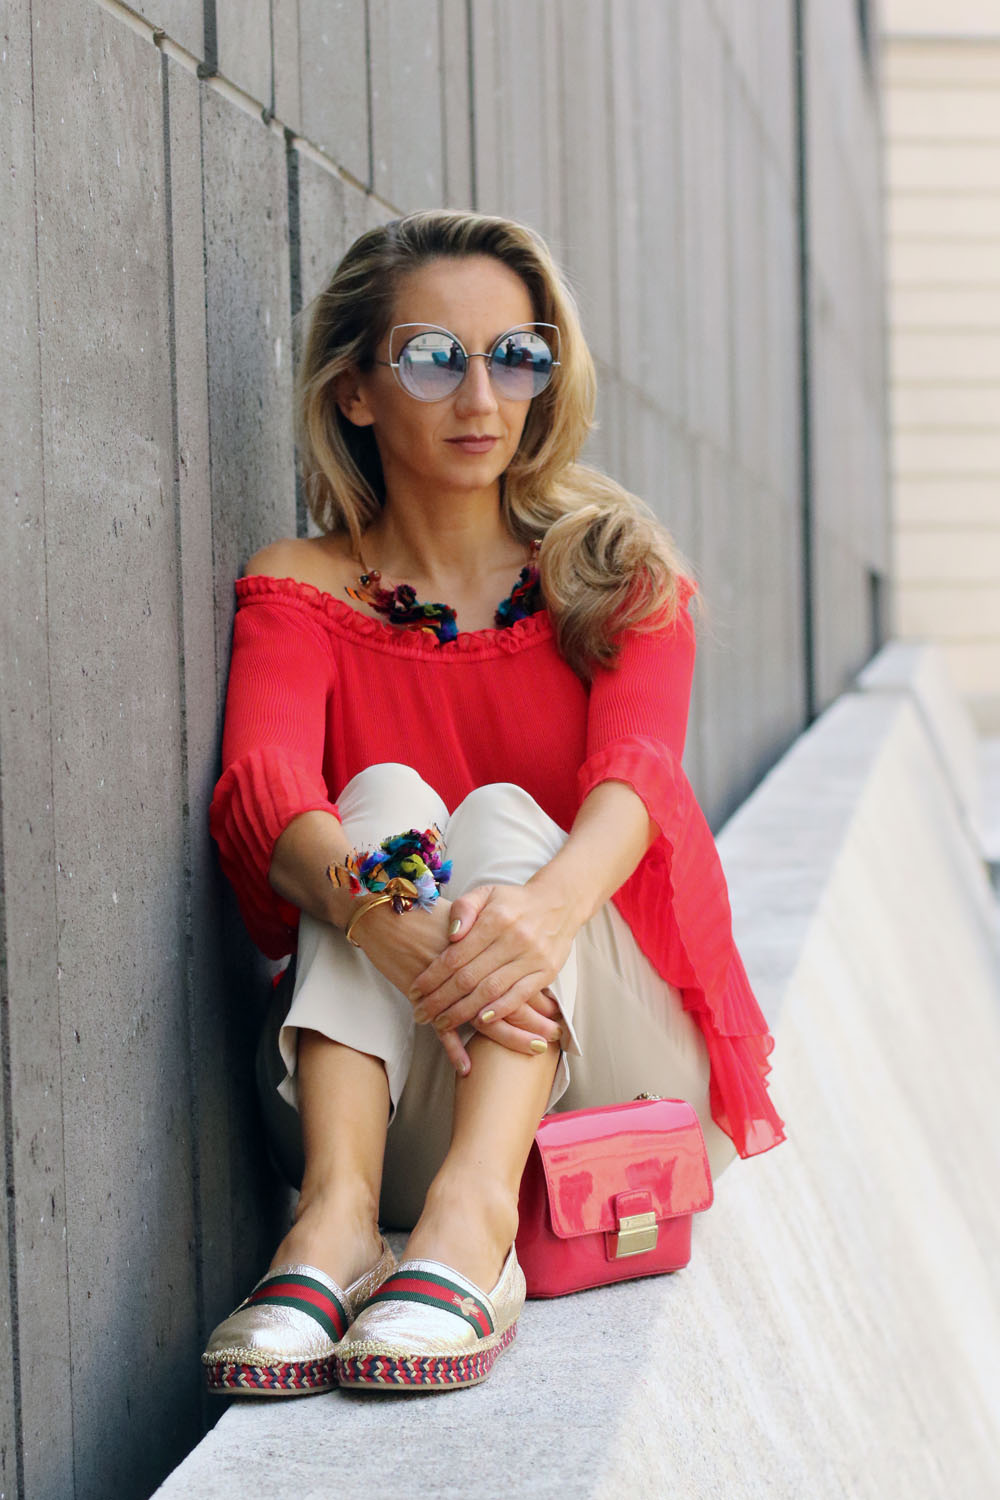 colourclub-modeblog-outfit-off-the-shoulder-top-gucci-shoes-furla-bag-thai-silk-juwelery-ornaments-lor9